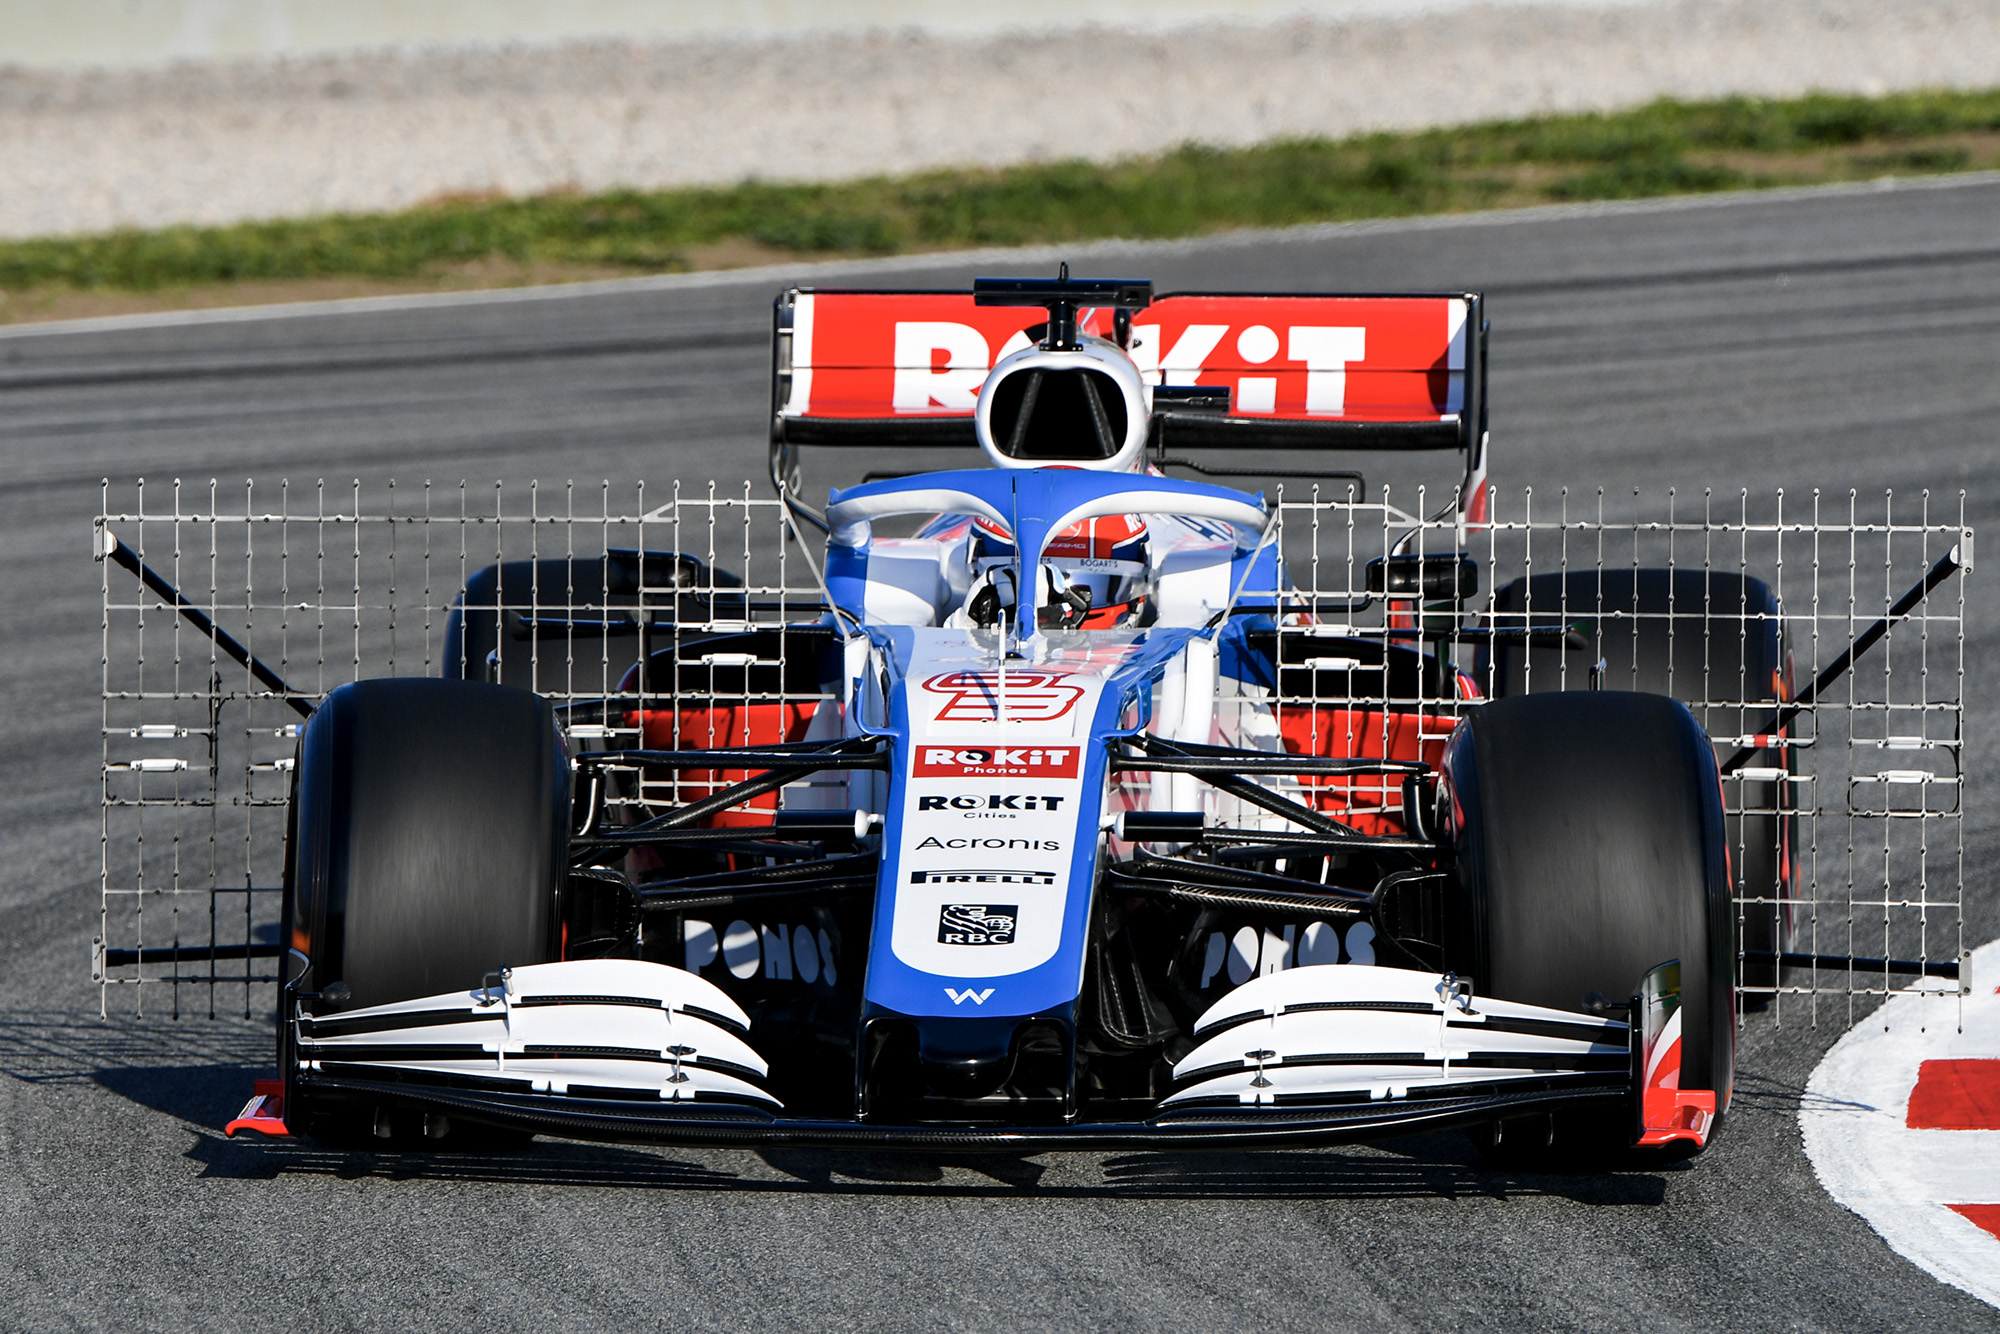 F1 testing: the hunt for speed